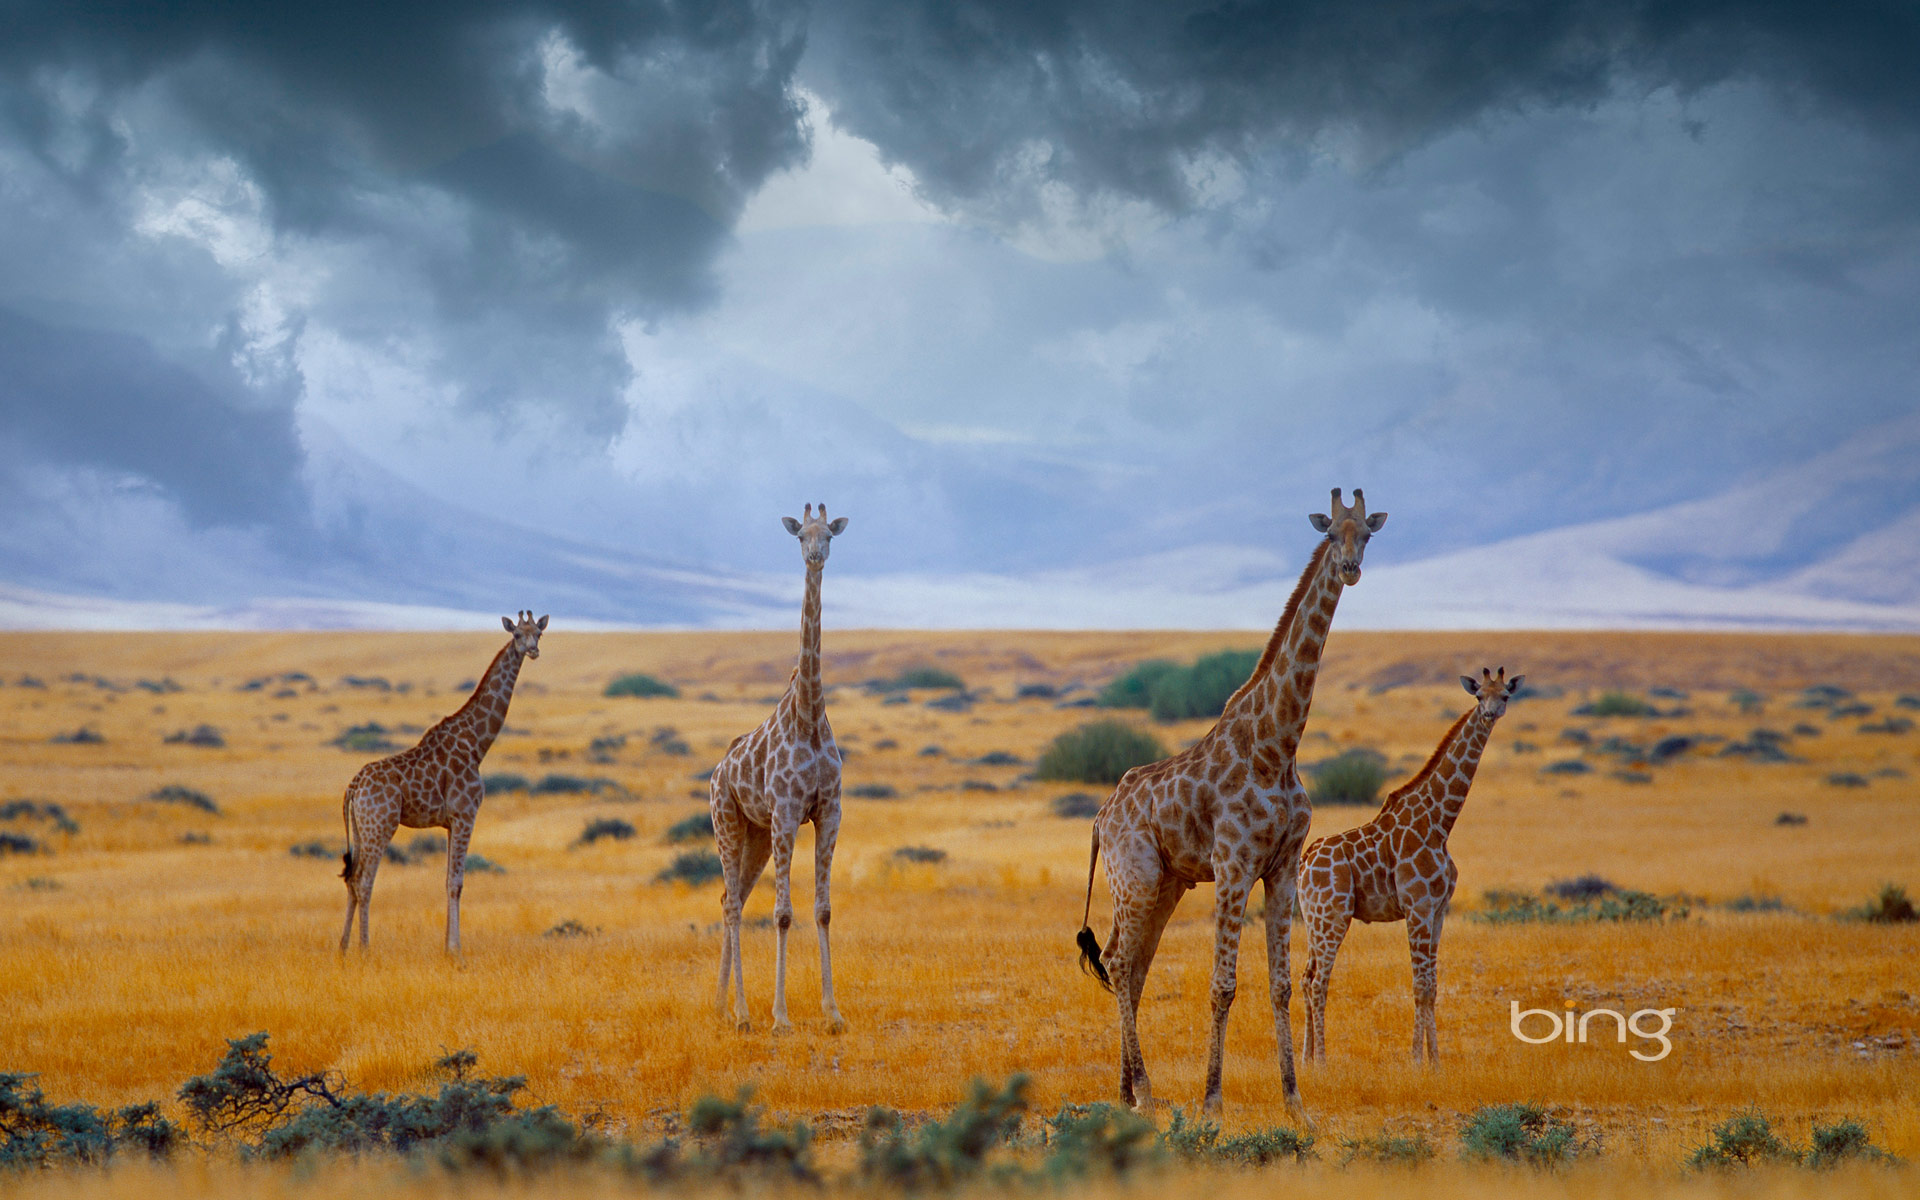 Small herd of giraffes, Namibia